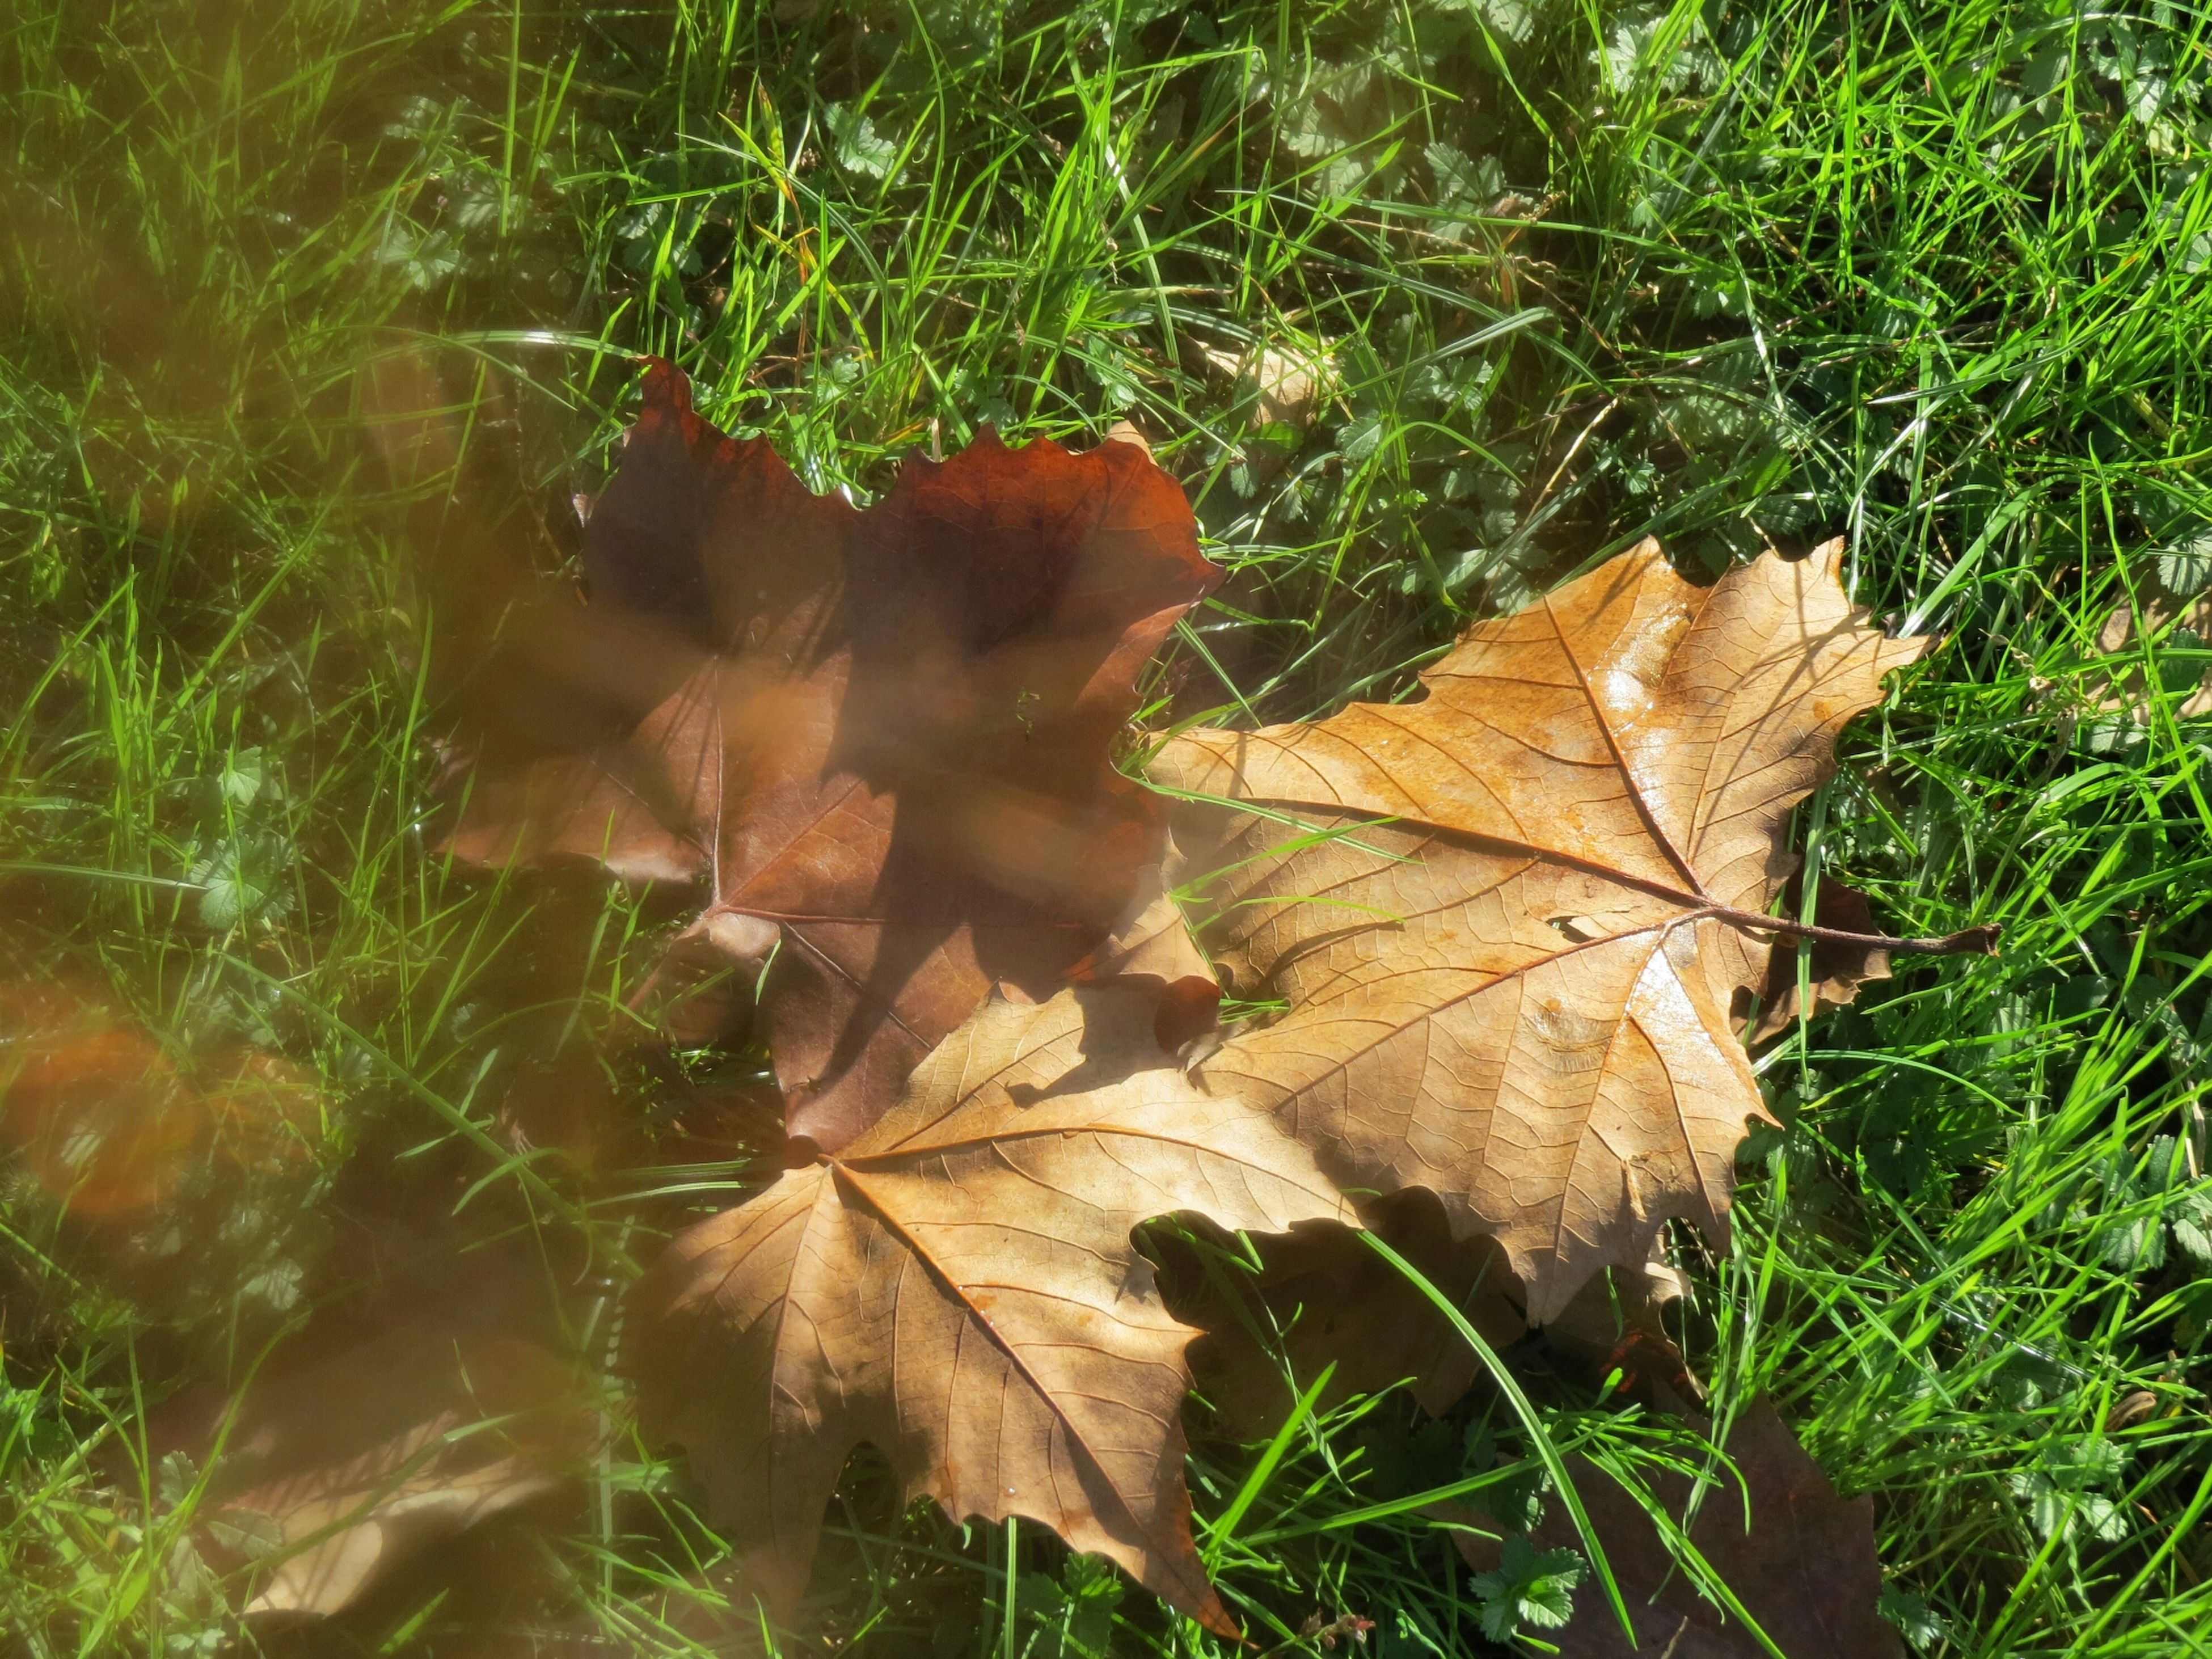 leaf, grass, dry, growth, field, nature, high angle view, plant, autumn, close-up, grassy, change, day, outdoors, fragility, sunlight, green color, no people, leaves, brown